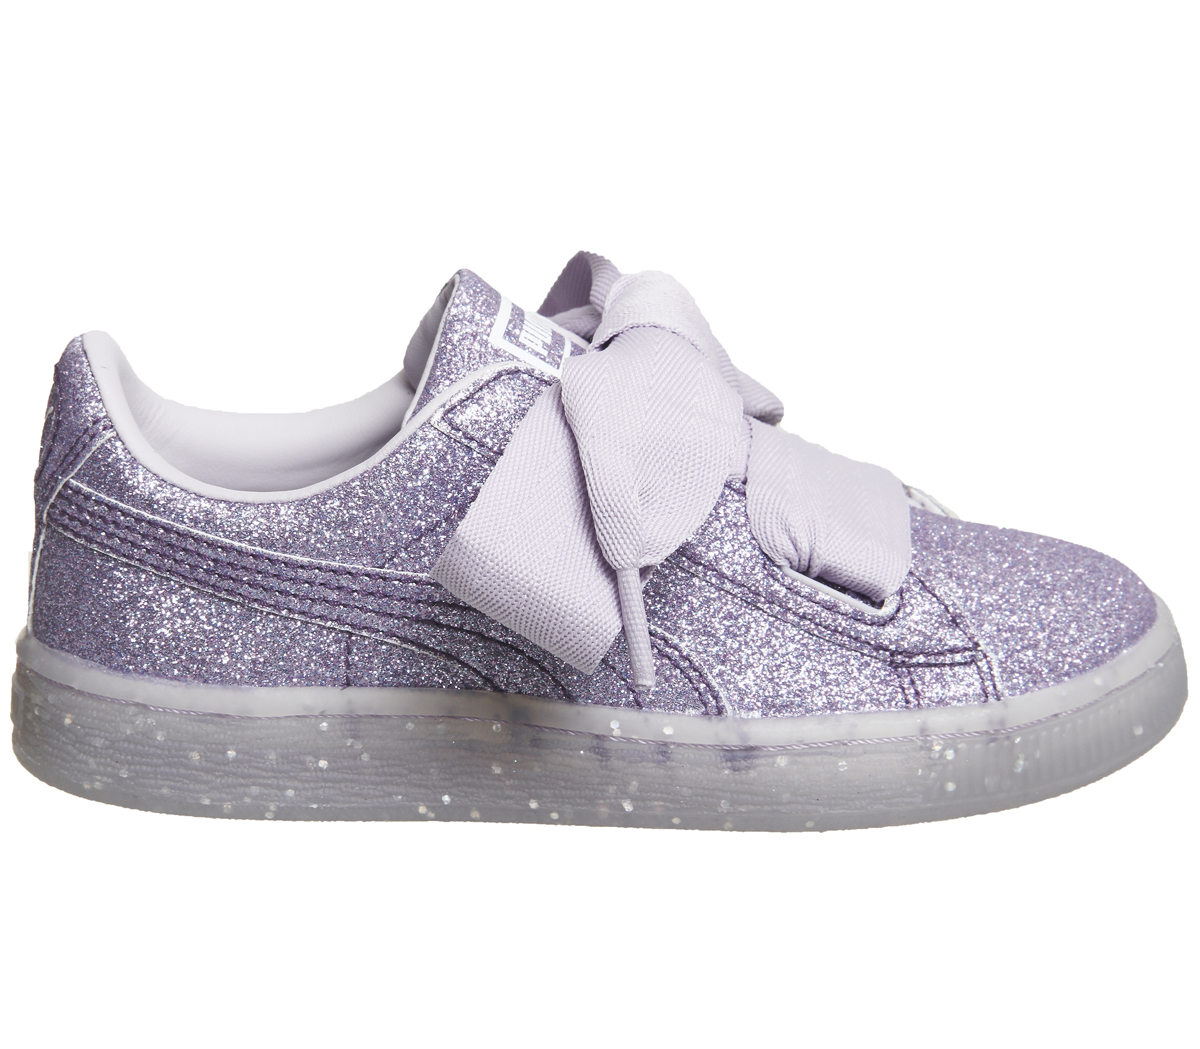 fc2245f61077 Kids Puma Basket Heart Ps Thistle Glitter Exclusive Kids